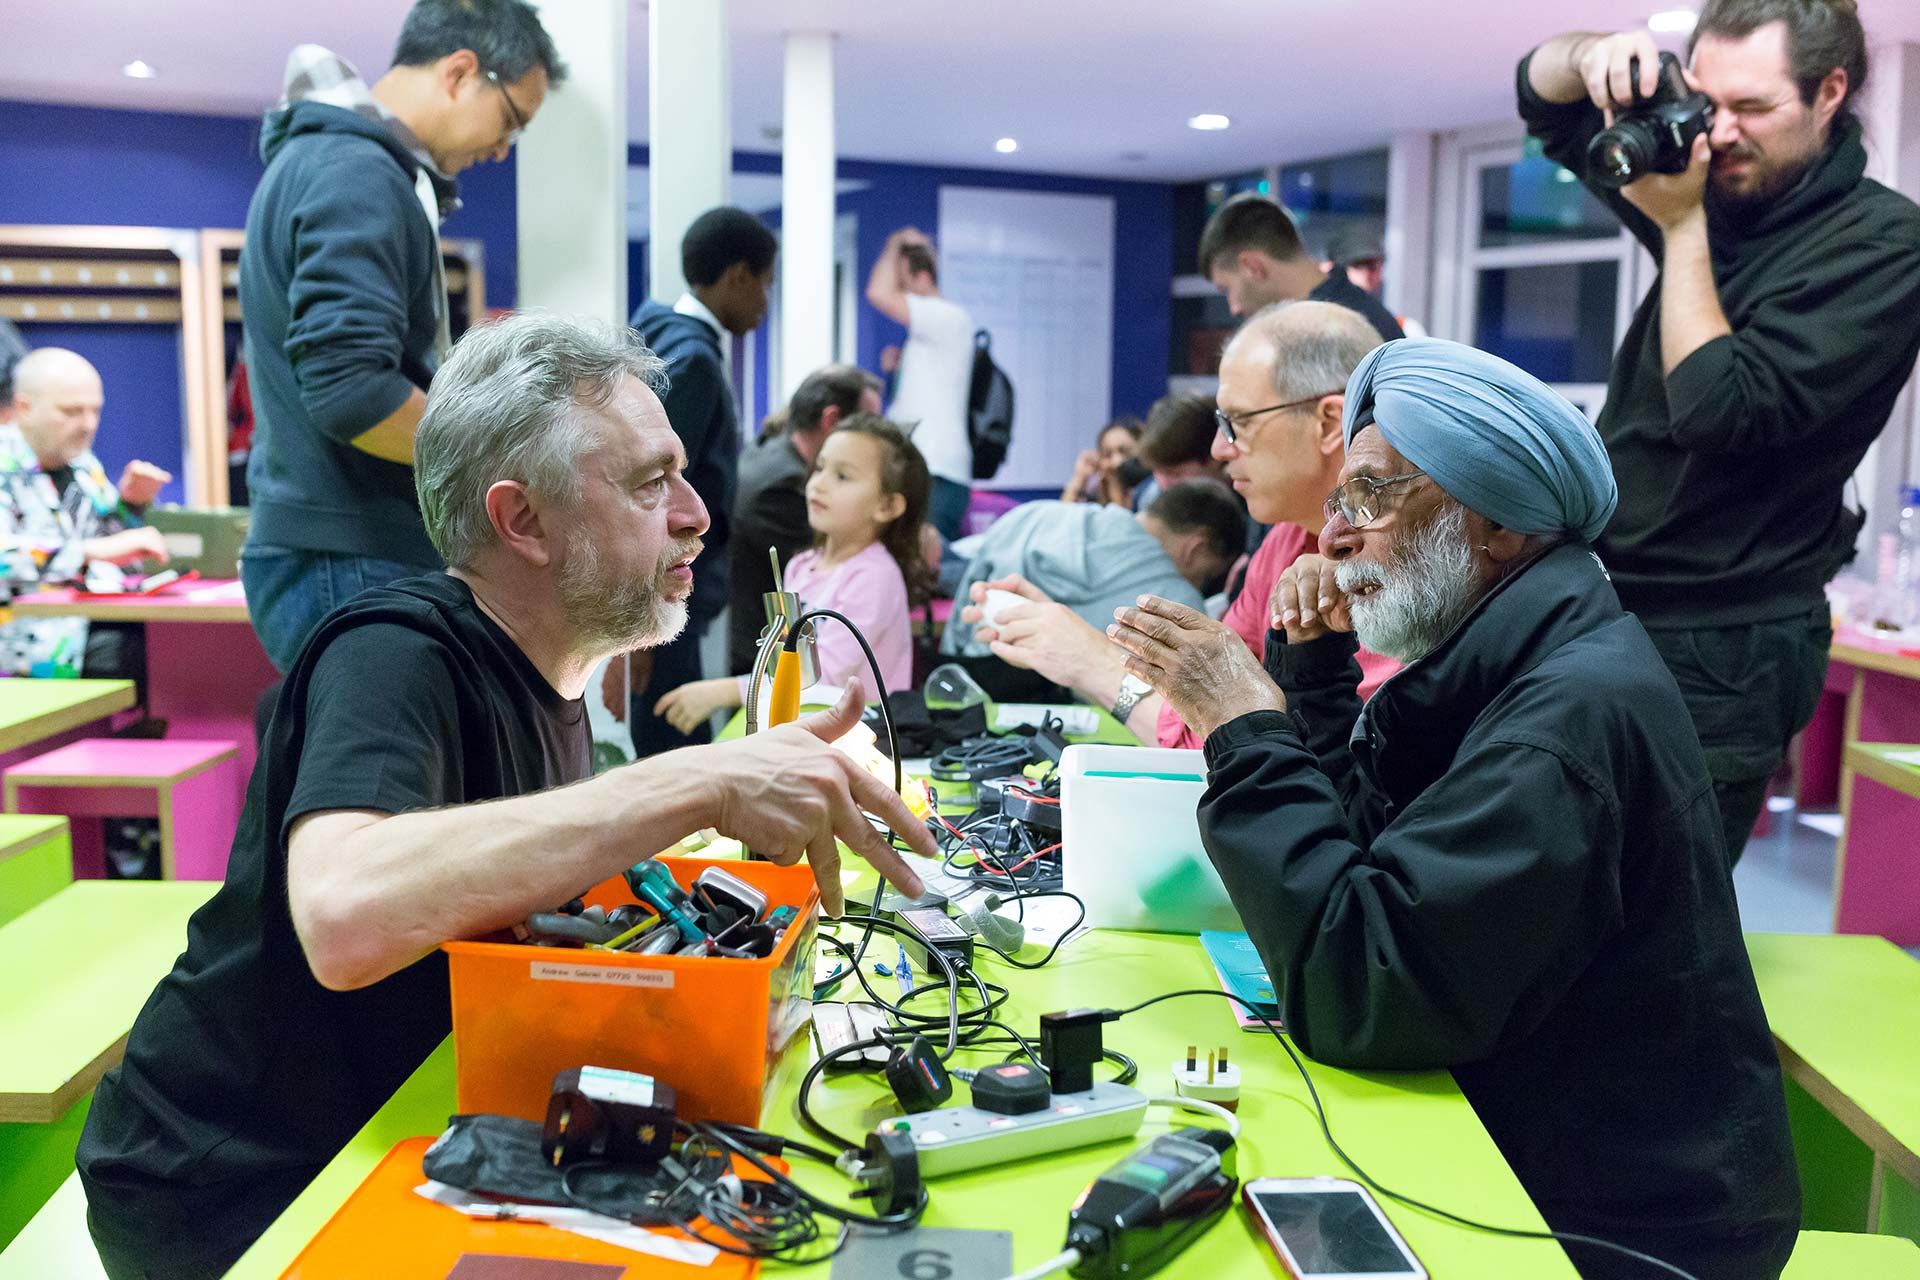 Fixfest-with-The-Restart-Project-at-The-London-School-of-Economics-and-The-Museum-of-London-on-7th-October-2017-©-Brendan-Foster-Photography-193-218.jpg